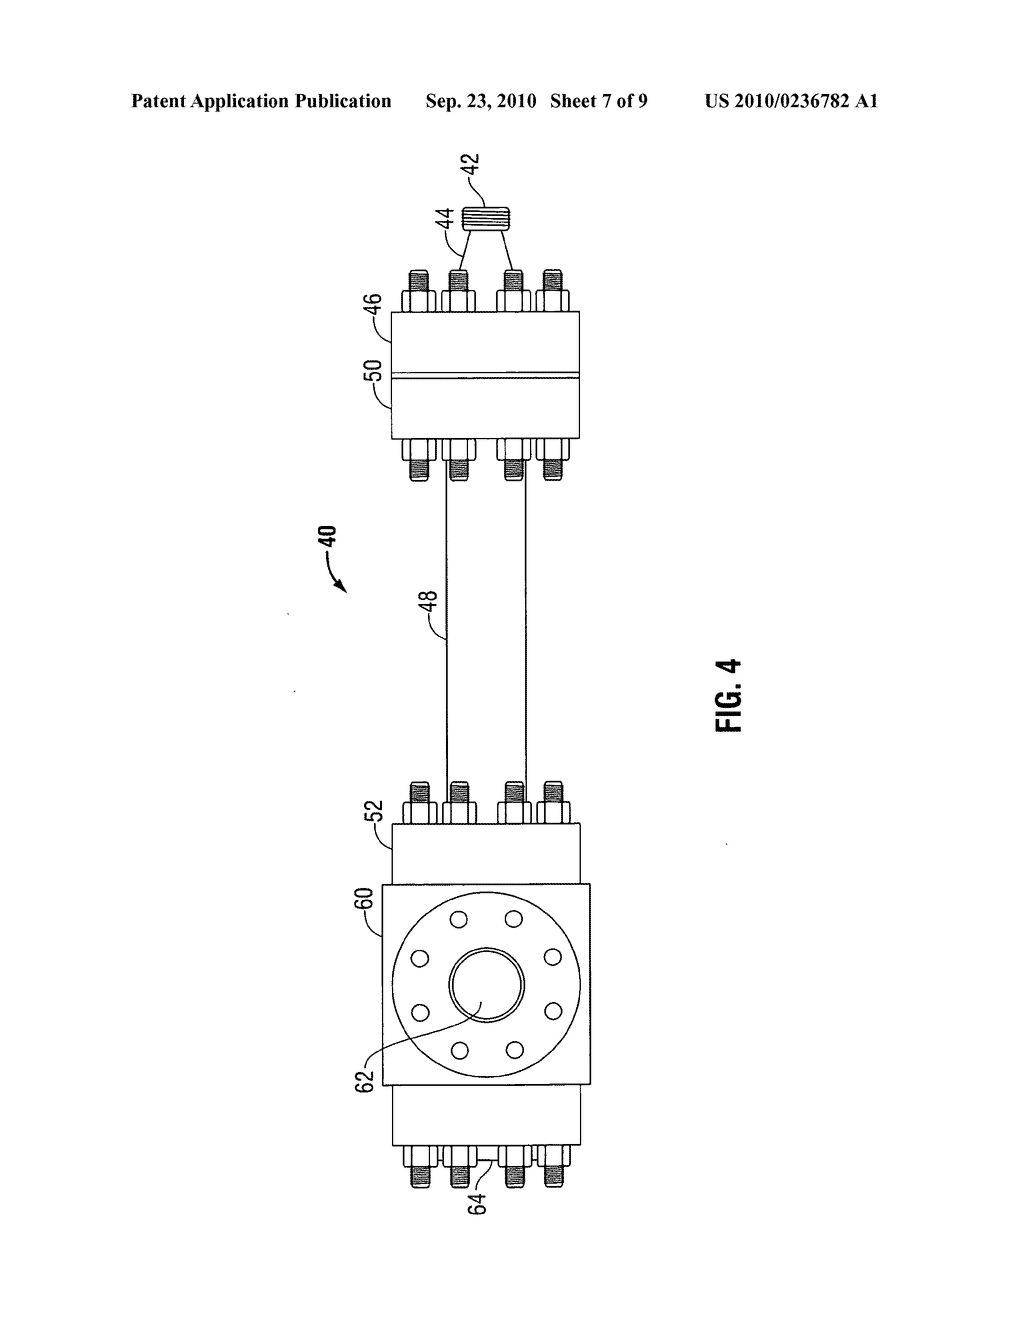 Horizontal Gas Well Diagram Trusted Wiring Schematic Ball Catcher Apparatus For Use In Fracturing Of Formations Drilling Techniques